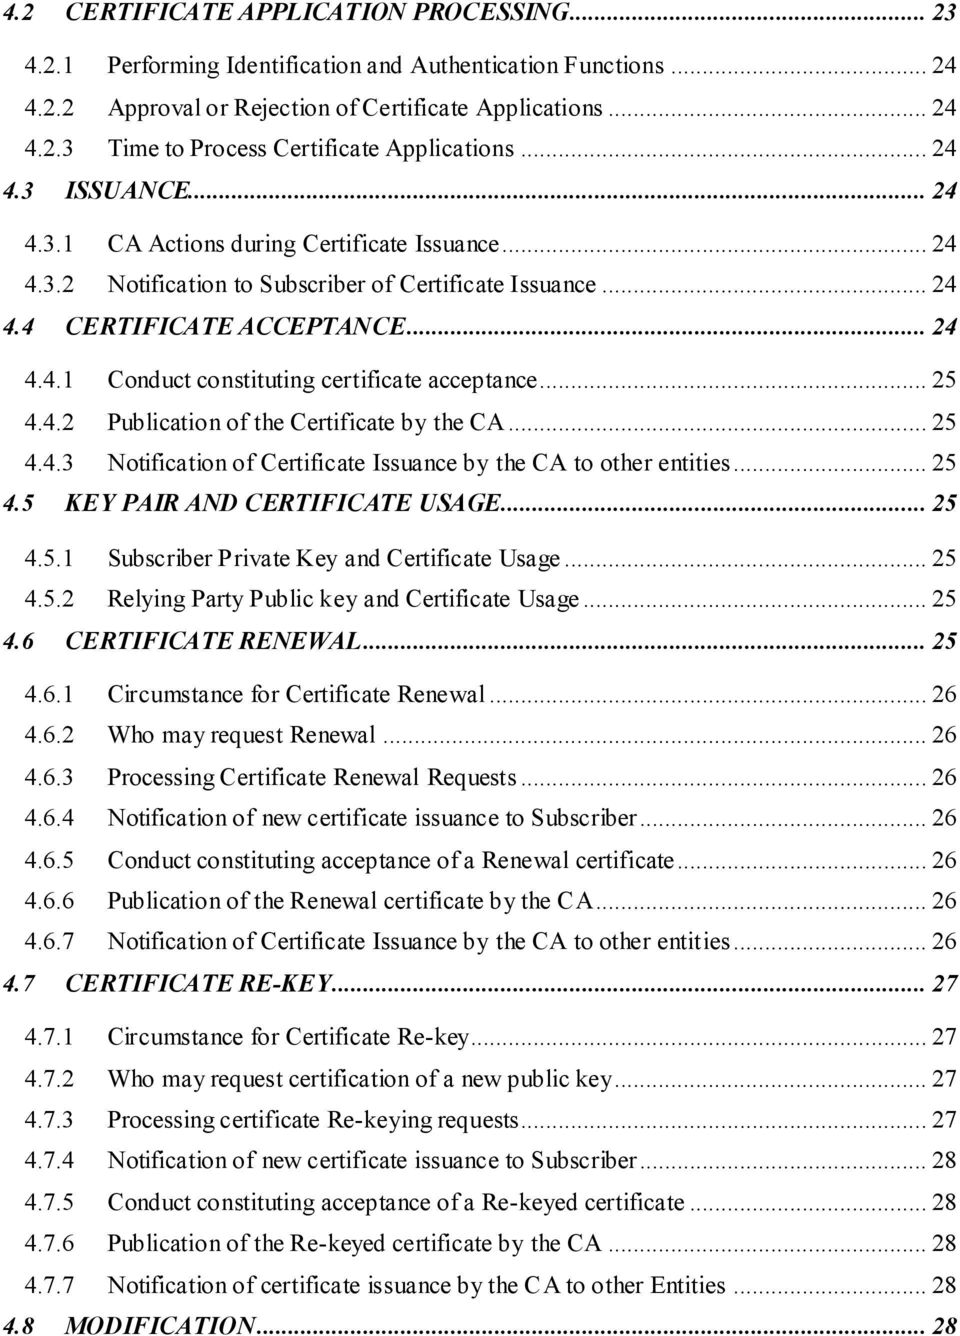 .. 25 4.4.2 Publication of the Certificate by the CA... 25 4.4.3 Notification of Certificate Issuance by the CA to other entities... 25 4.5 KEY PAIR AND CERTIFICATE USAGE... 25 4.5.1 Subscriber Private Key and Certificate Usage.